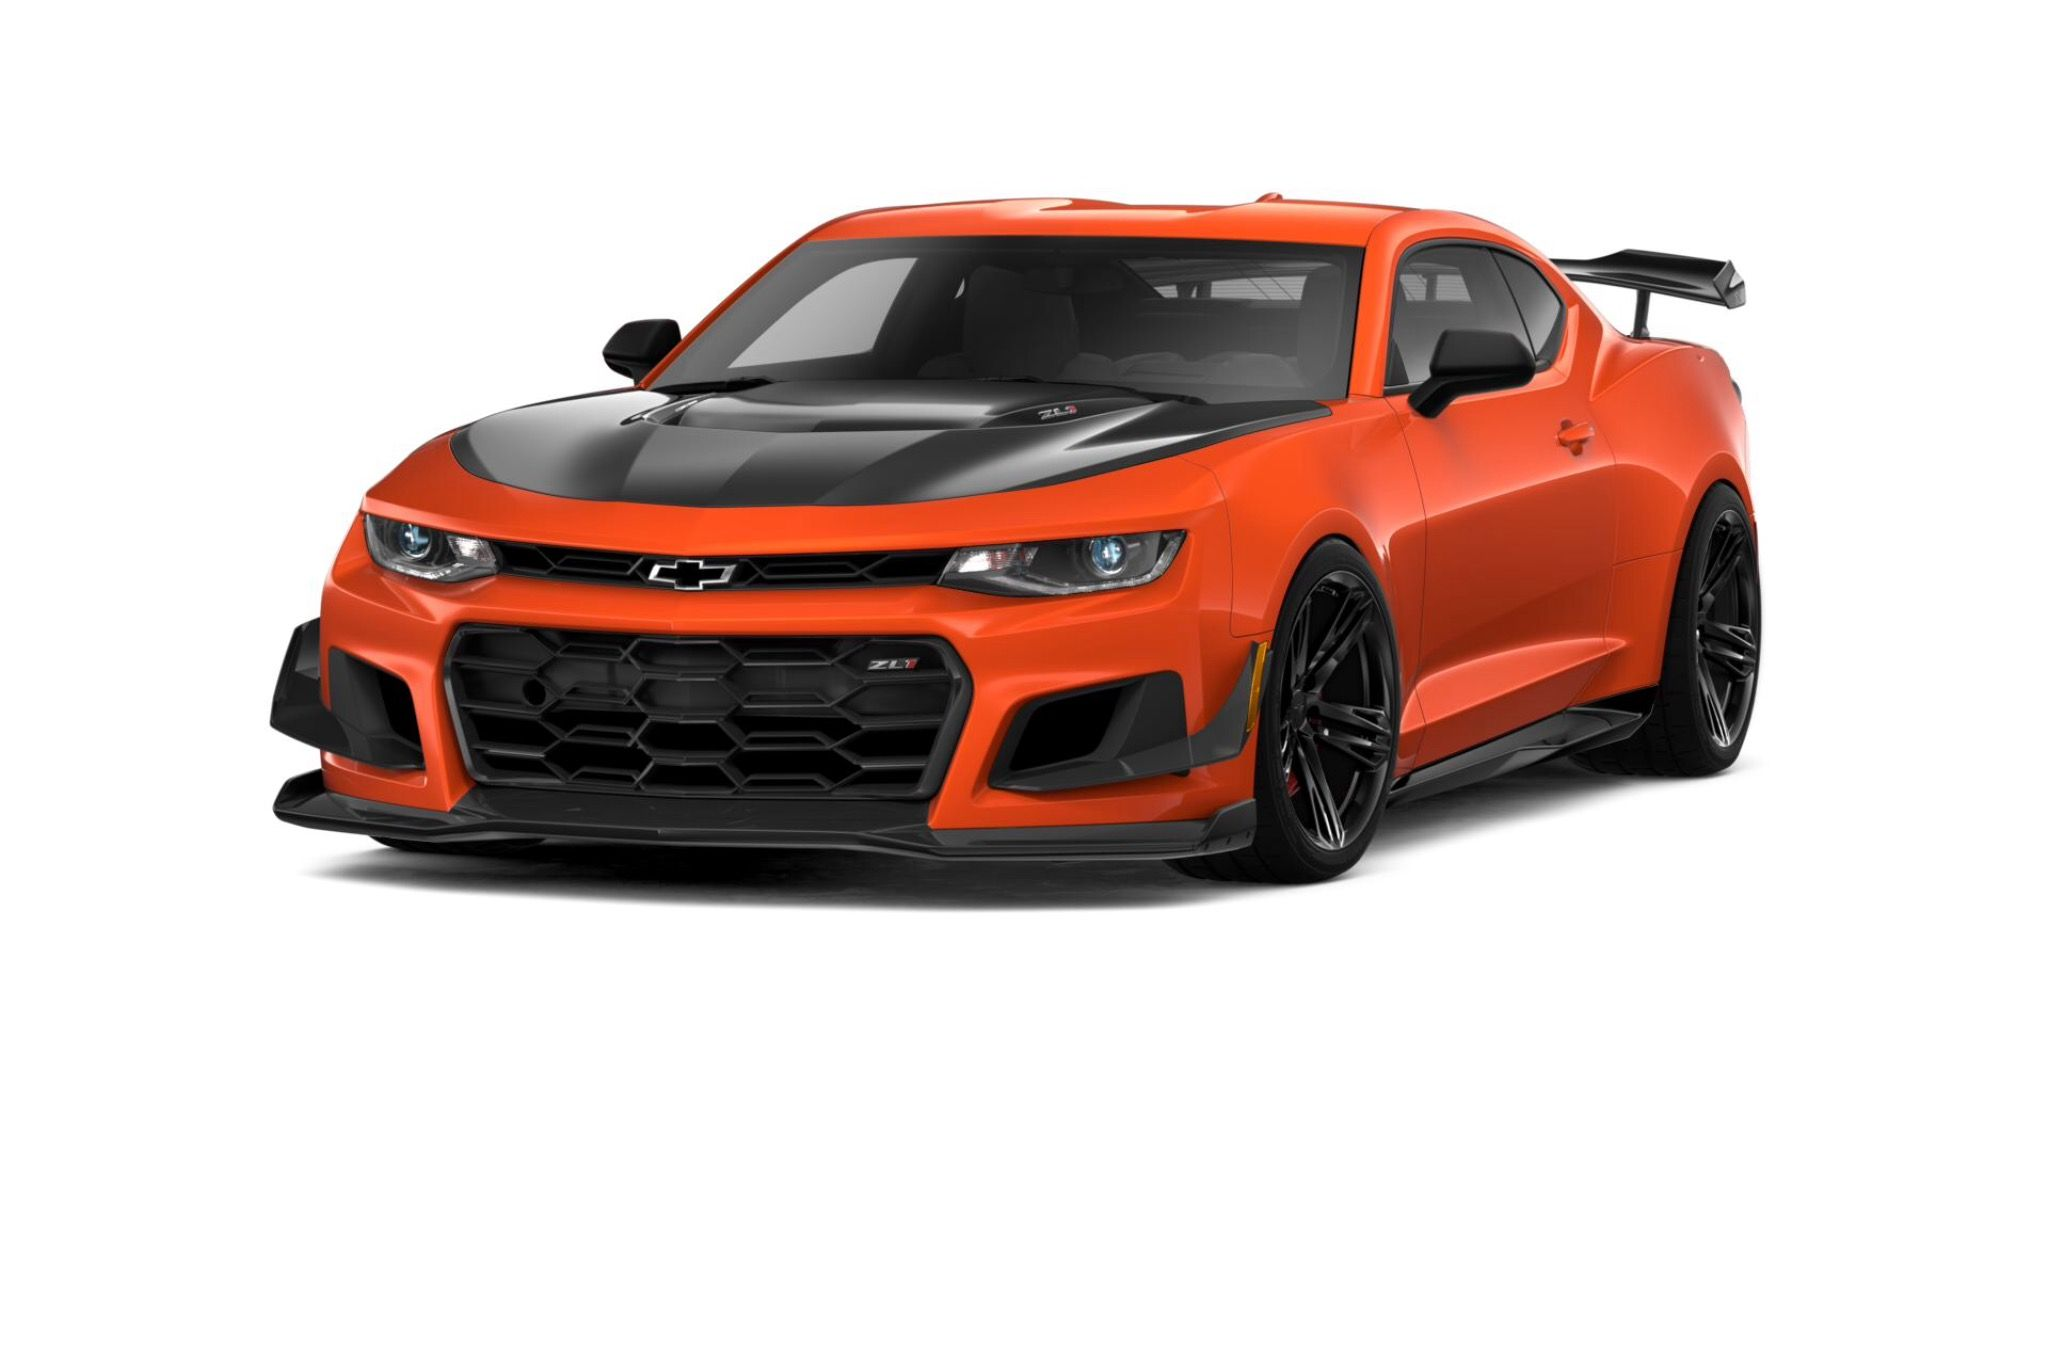 83d49d9ce5b Rendering of a 2019 Camaro ZL1 1LE painted in Crush